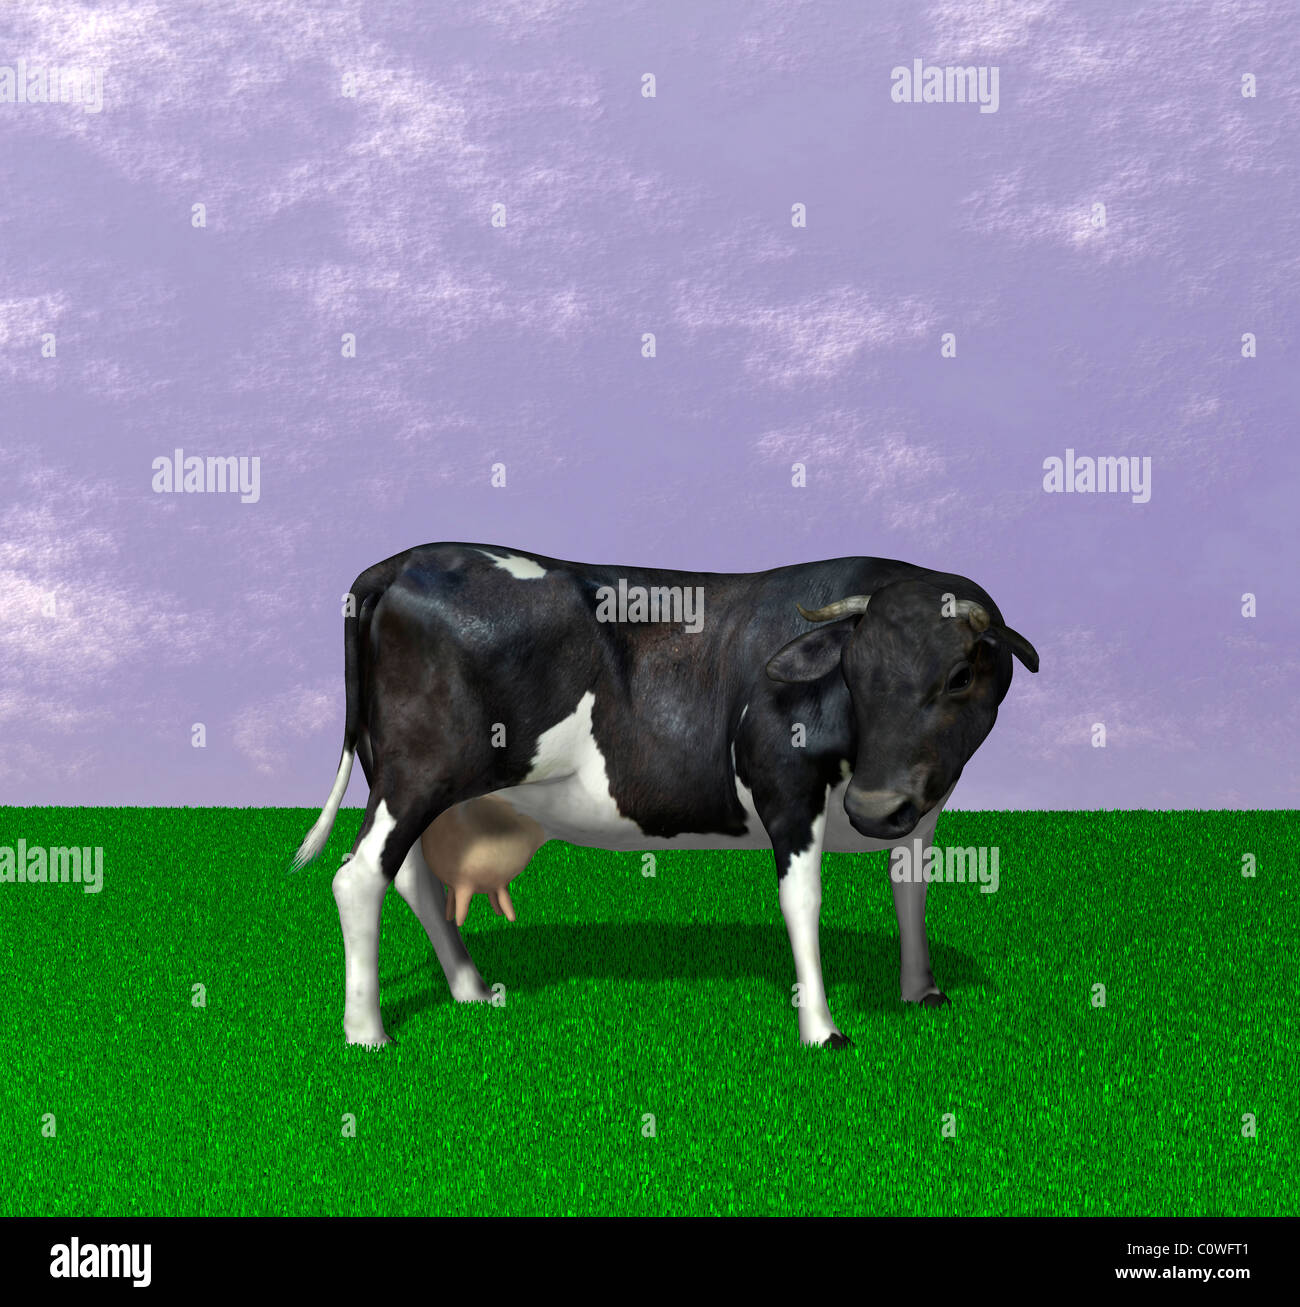 cow illustration - Stock Image